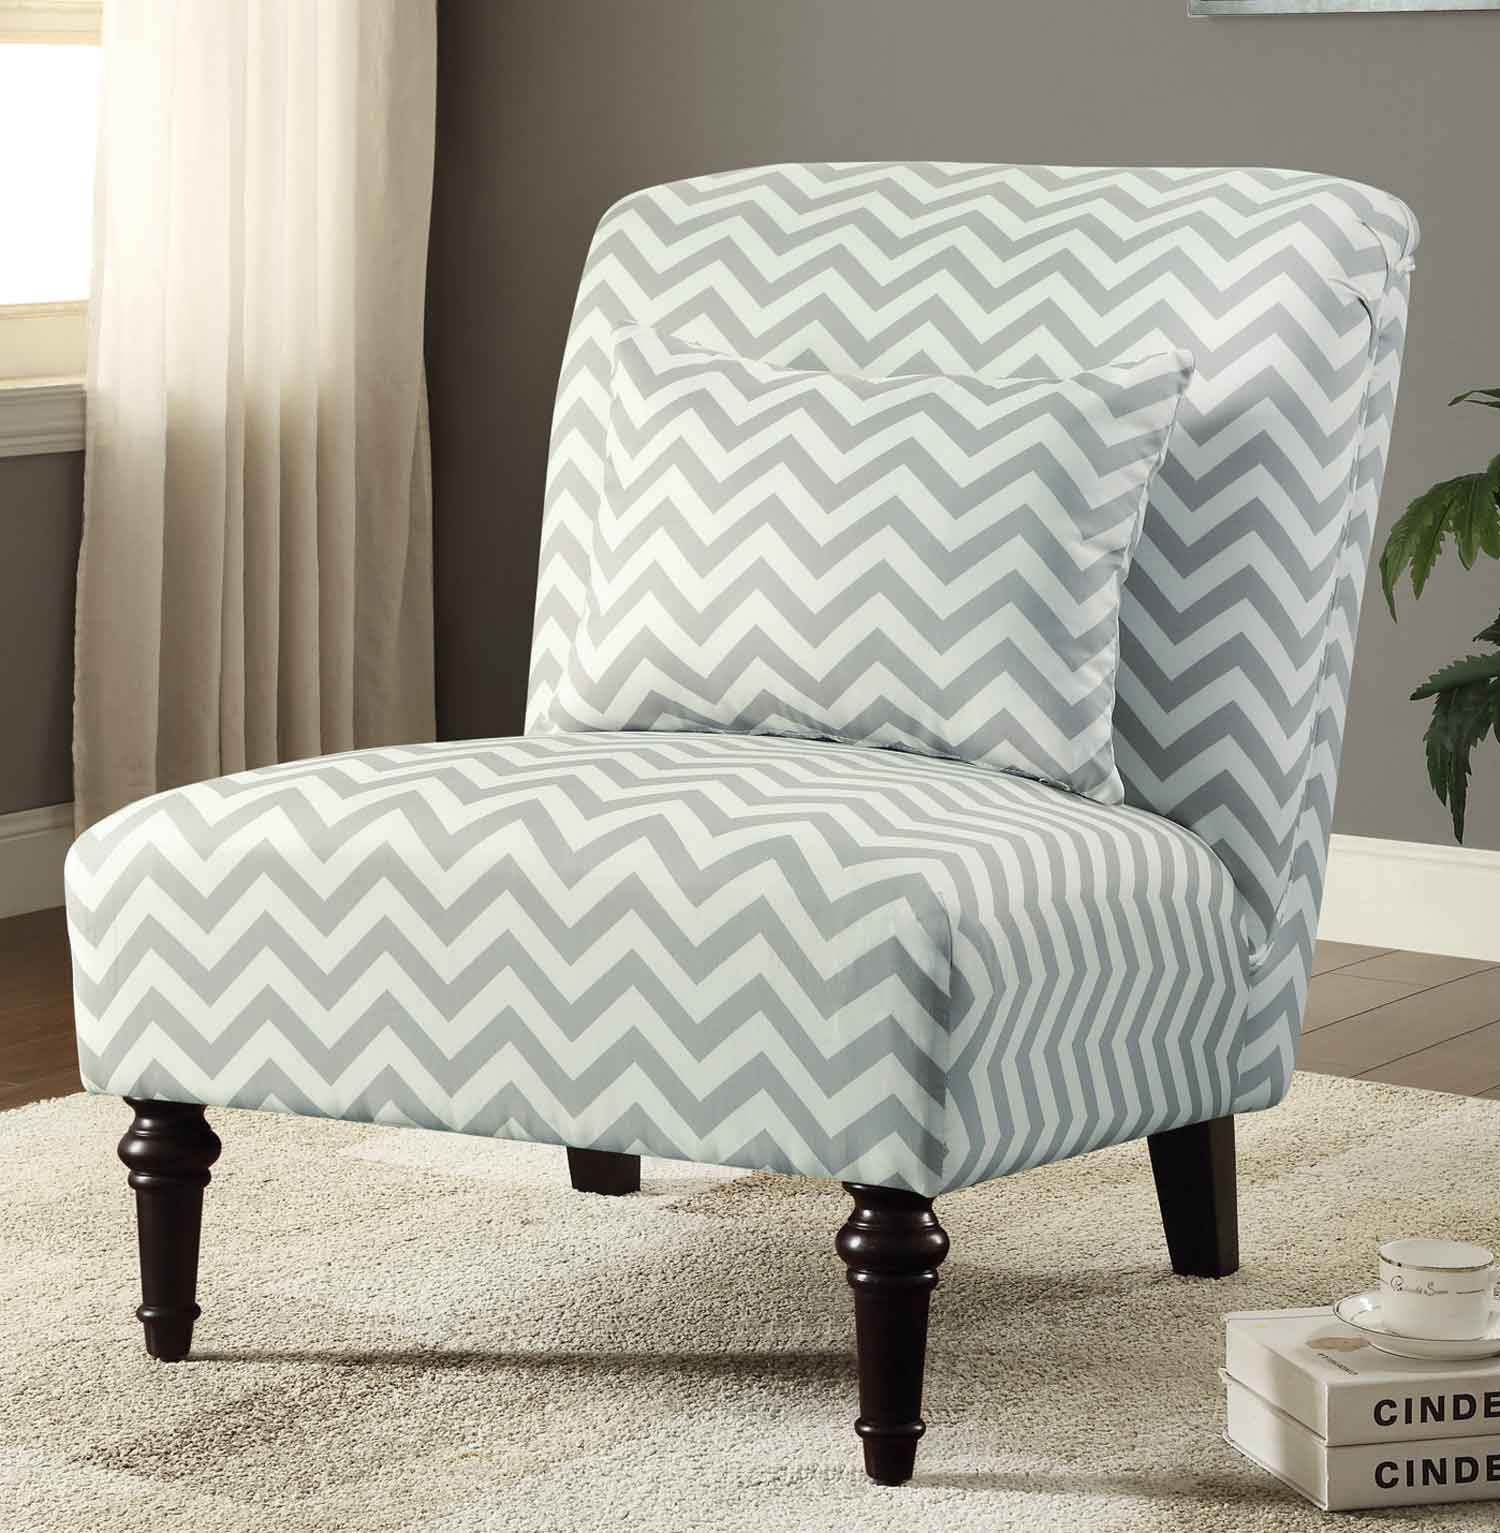 Accent Chair White Grey Chevron These beautiful accent